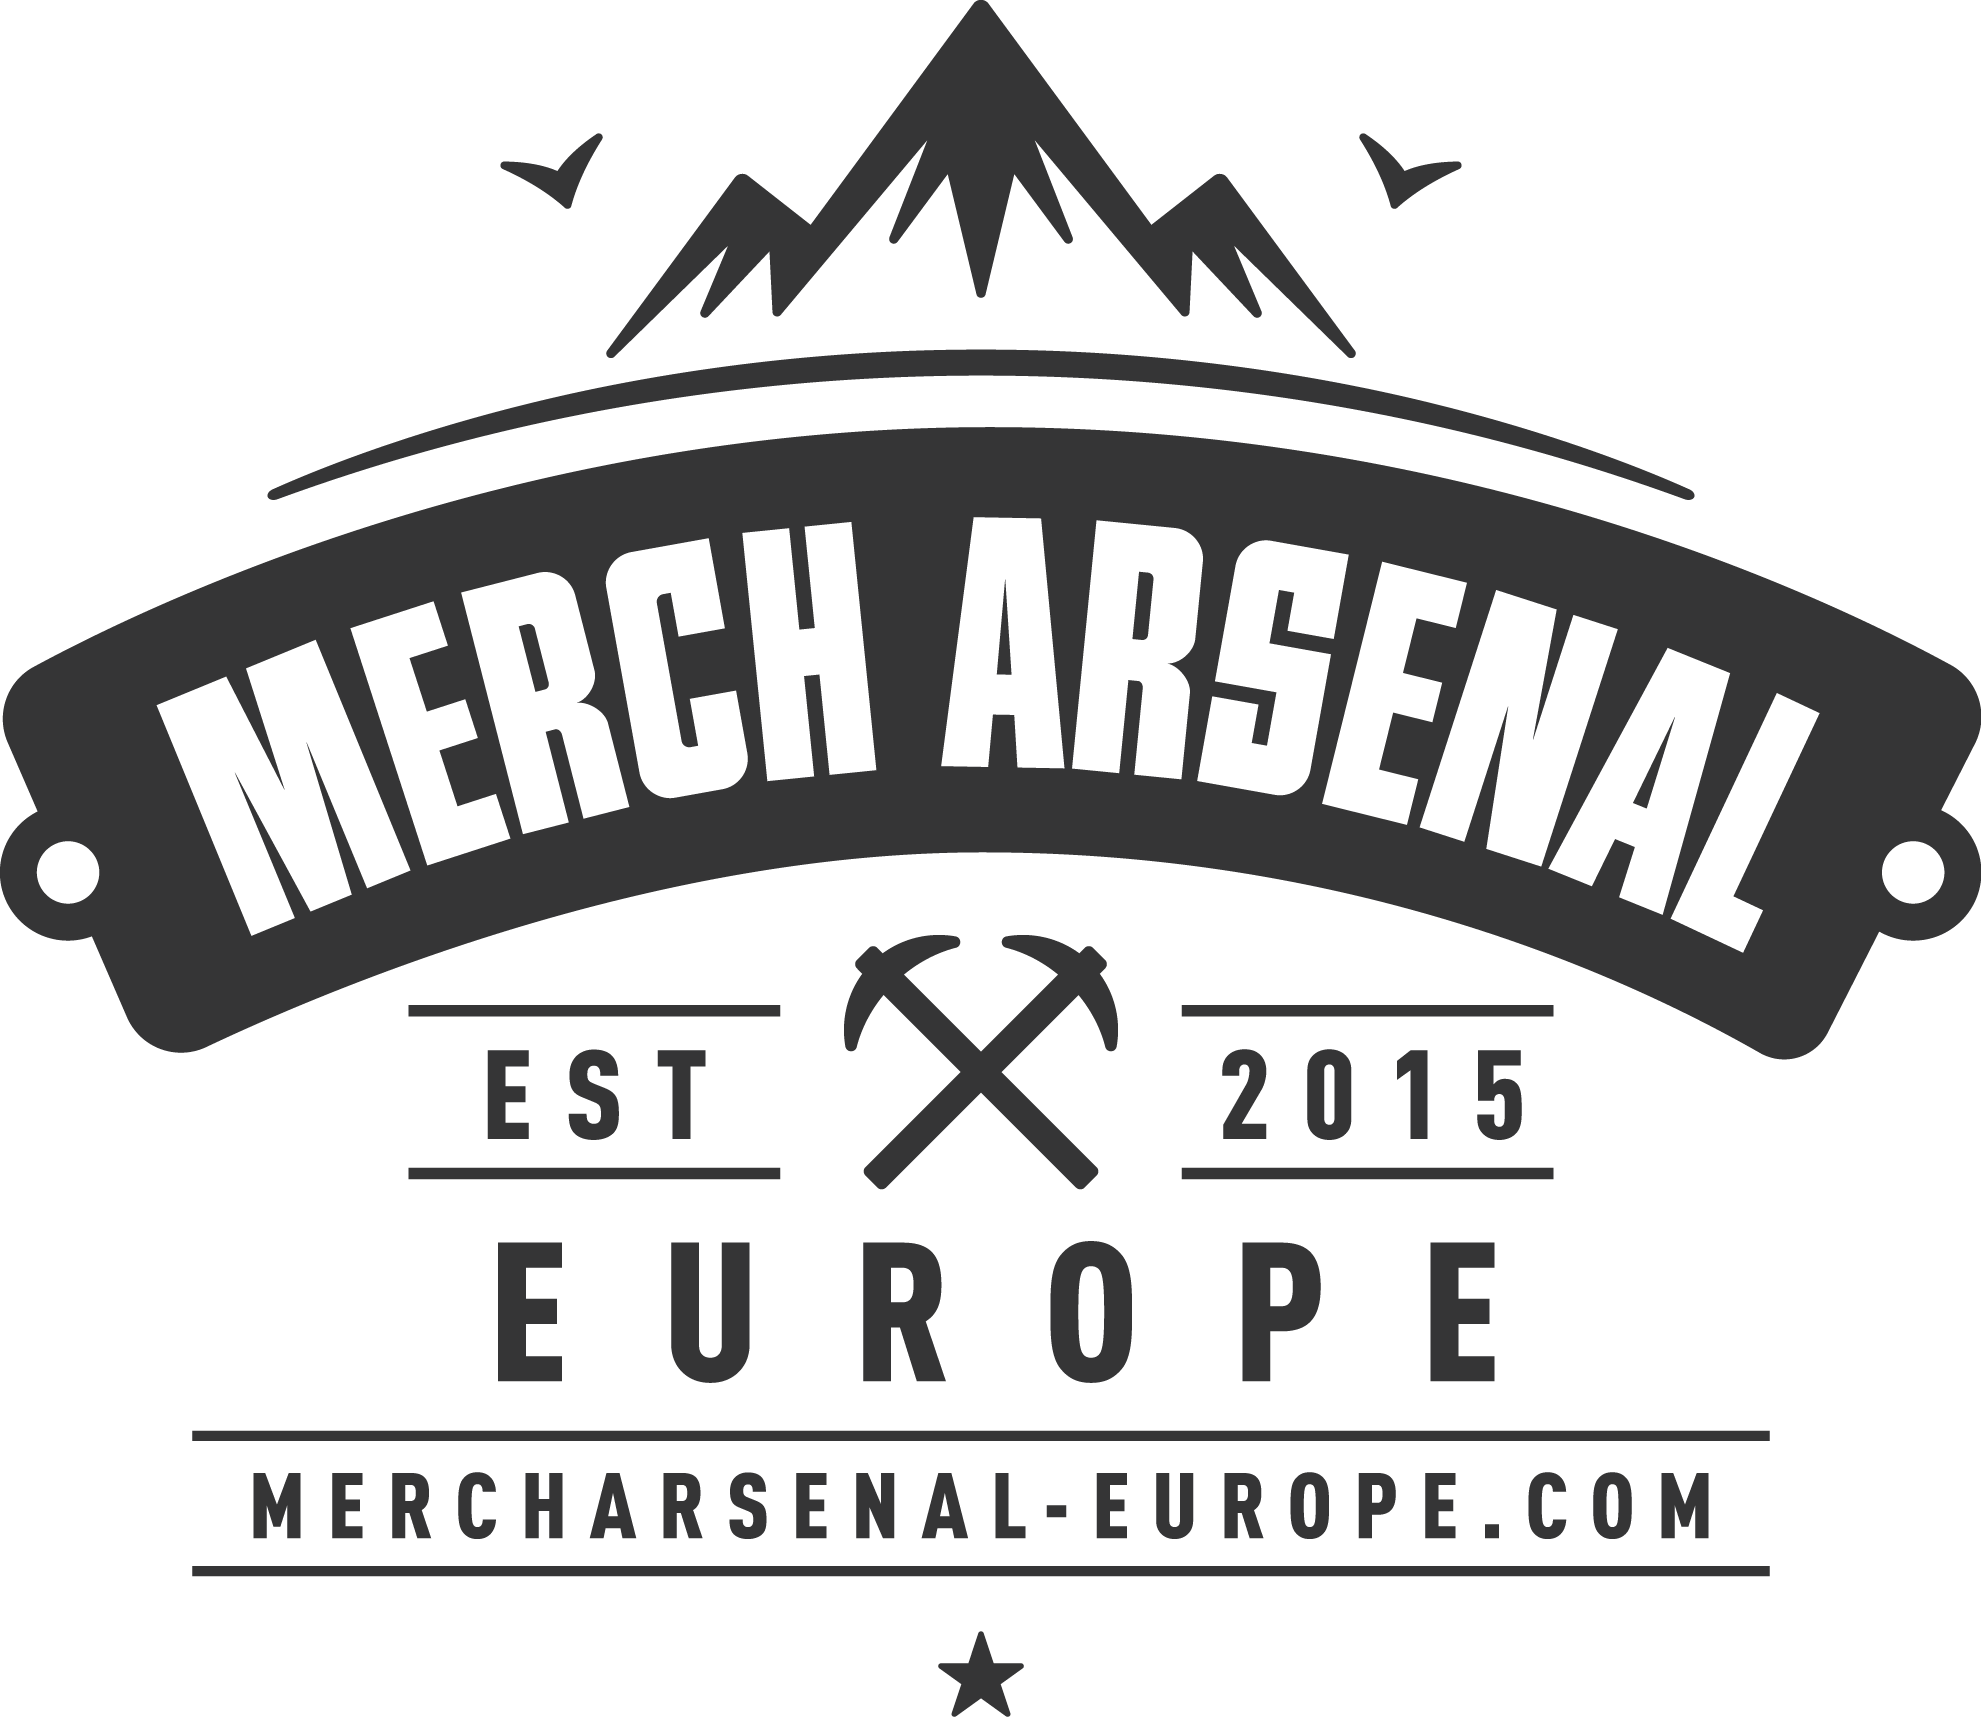 mercharsenal-europe_logopng